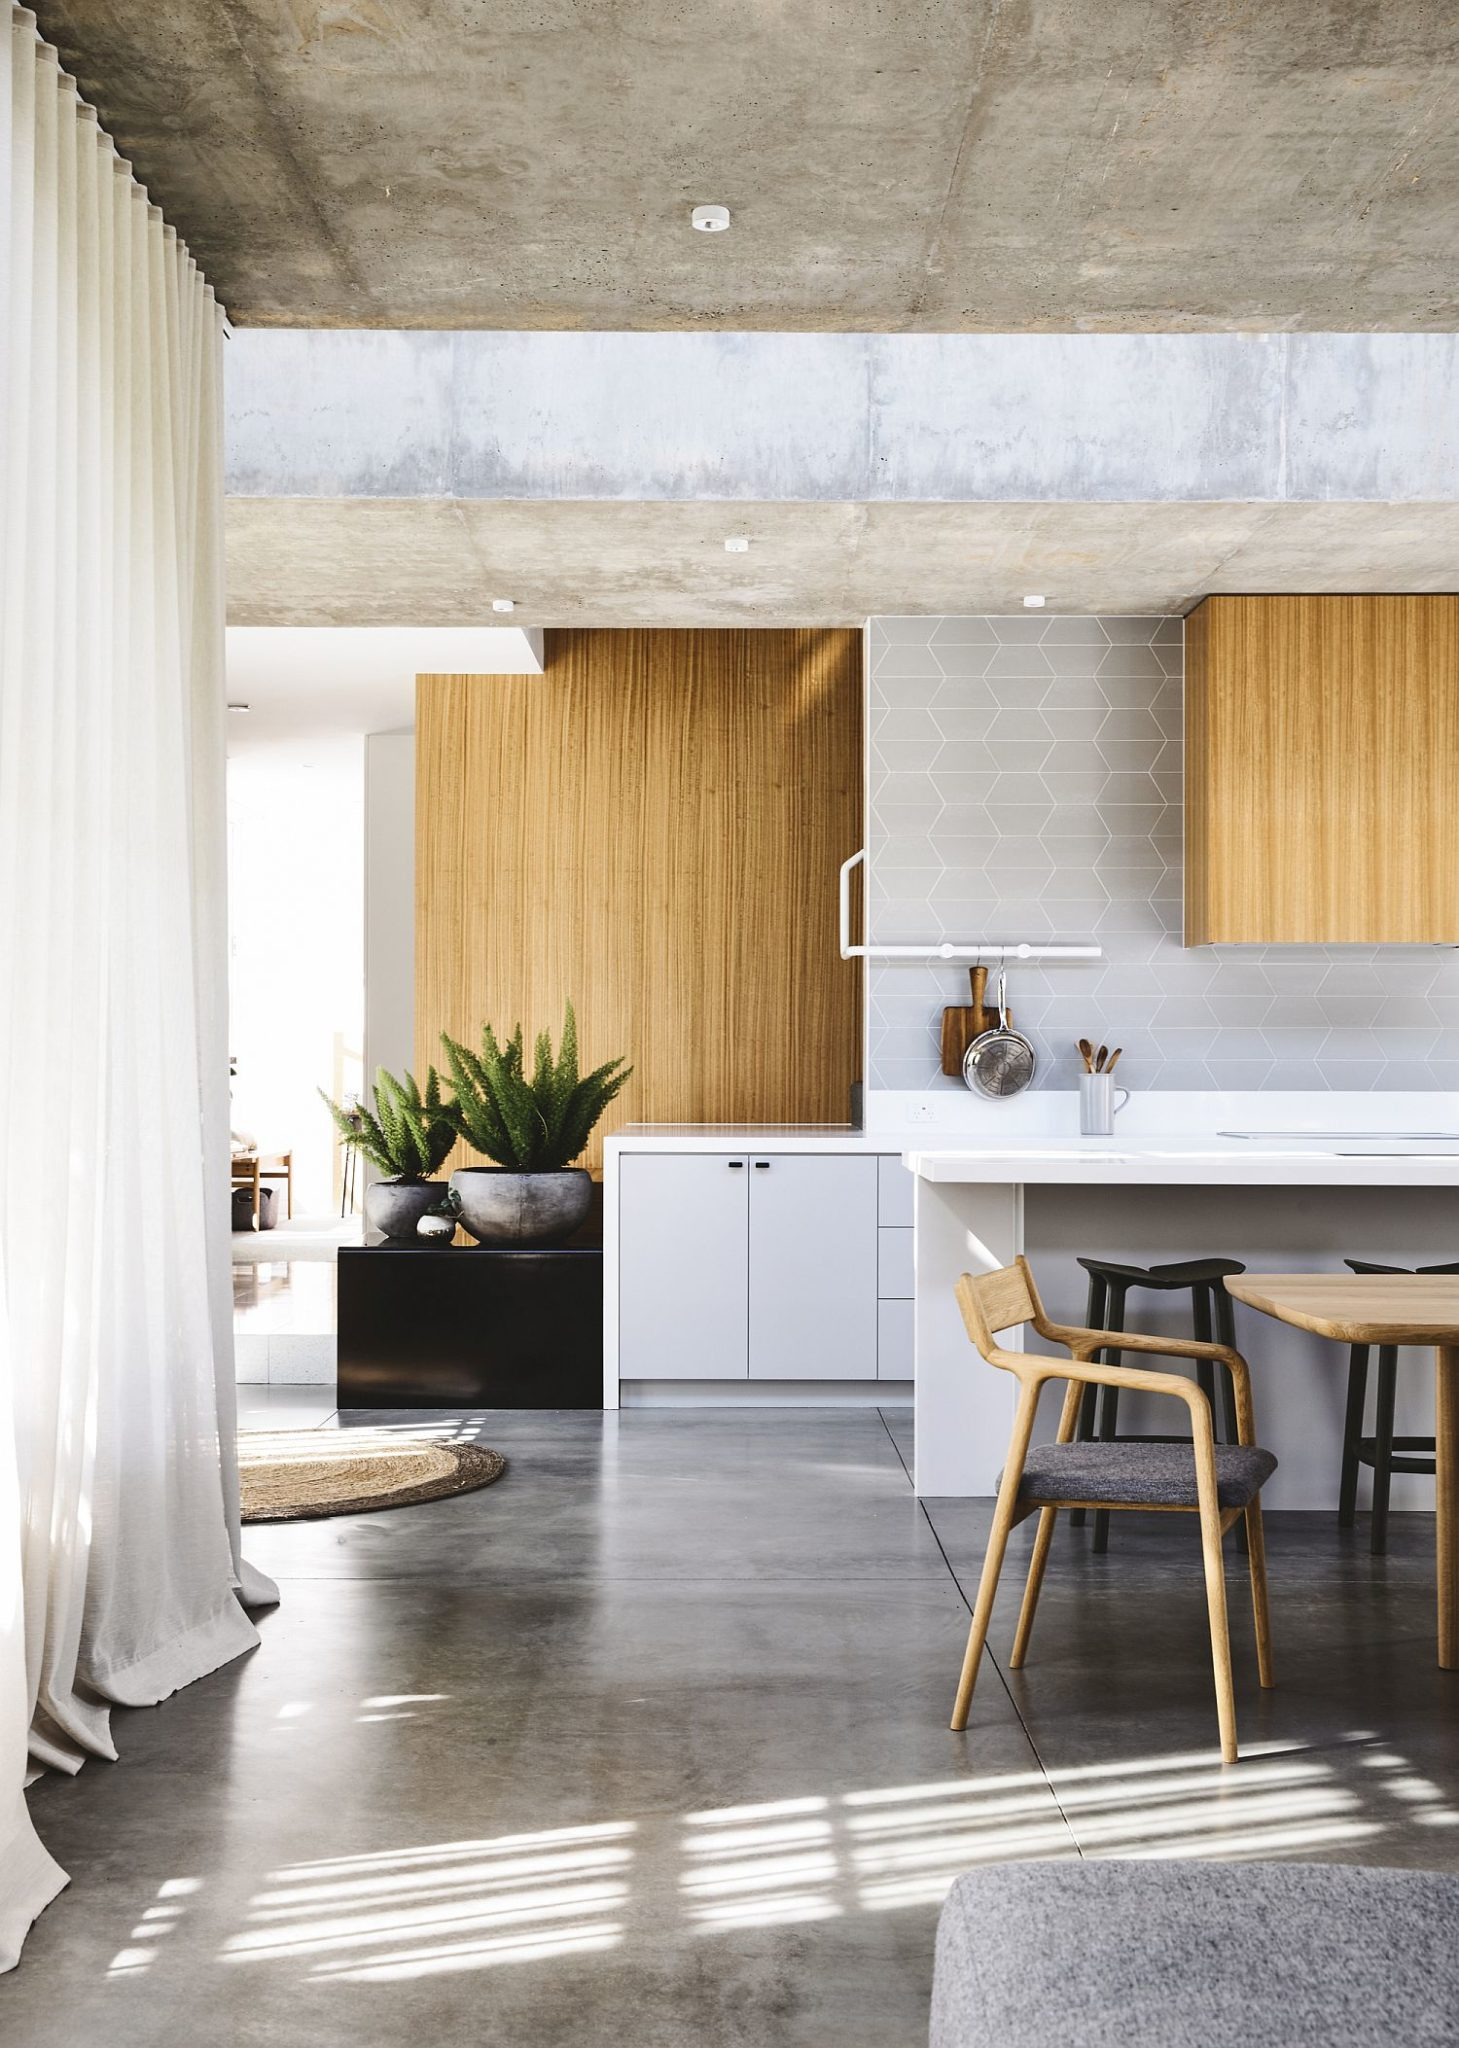 Wood brings a touch of warmth to the interior draped in concrete